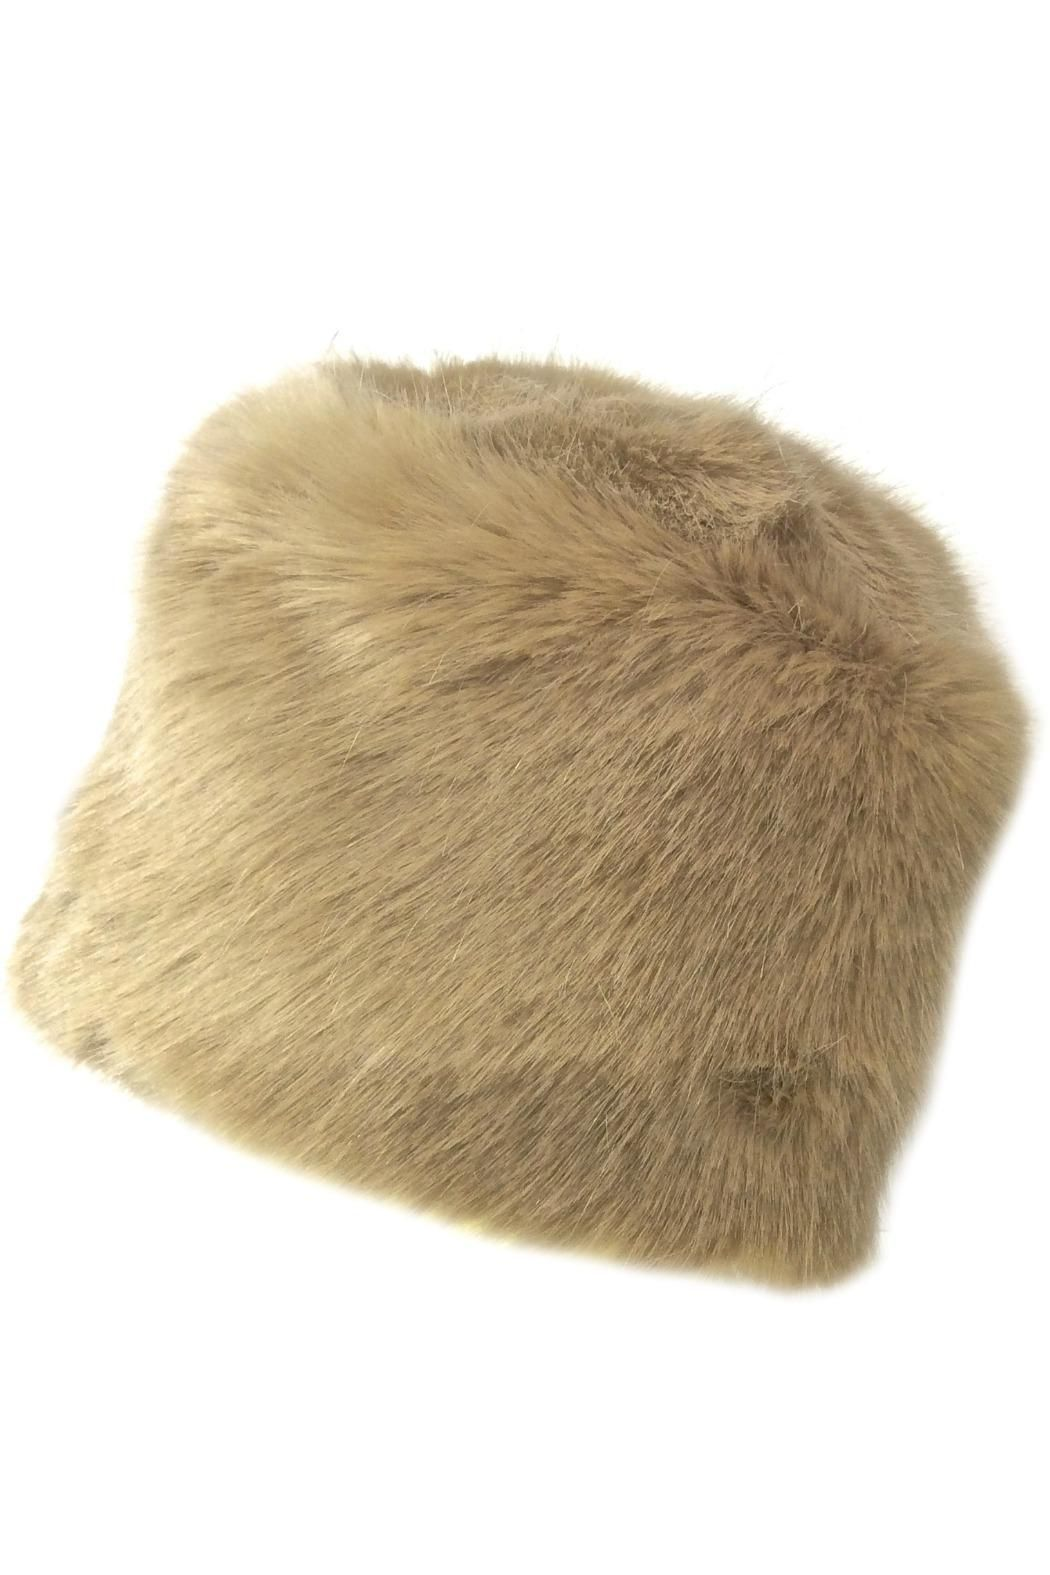 14531176b4c Plush and luxurious faux fur toque in solid color beige makes this hat so  much fun